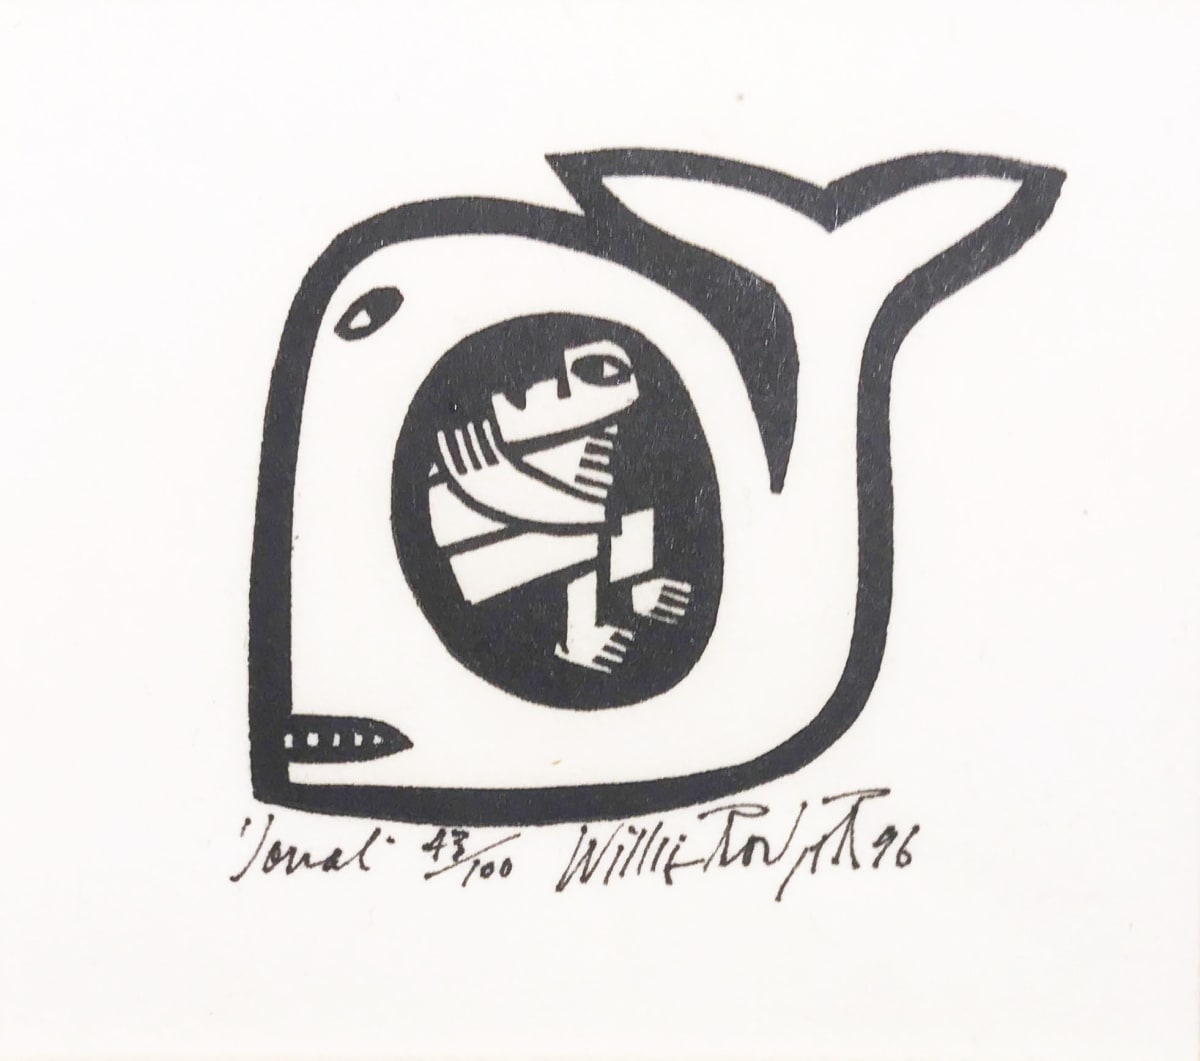 Willie Rodger RSA Jonah, 1996 Linocut on paper 5.5 x 7 cm Edition of 100